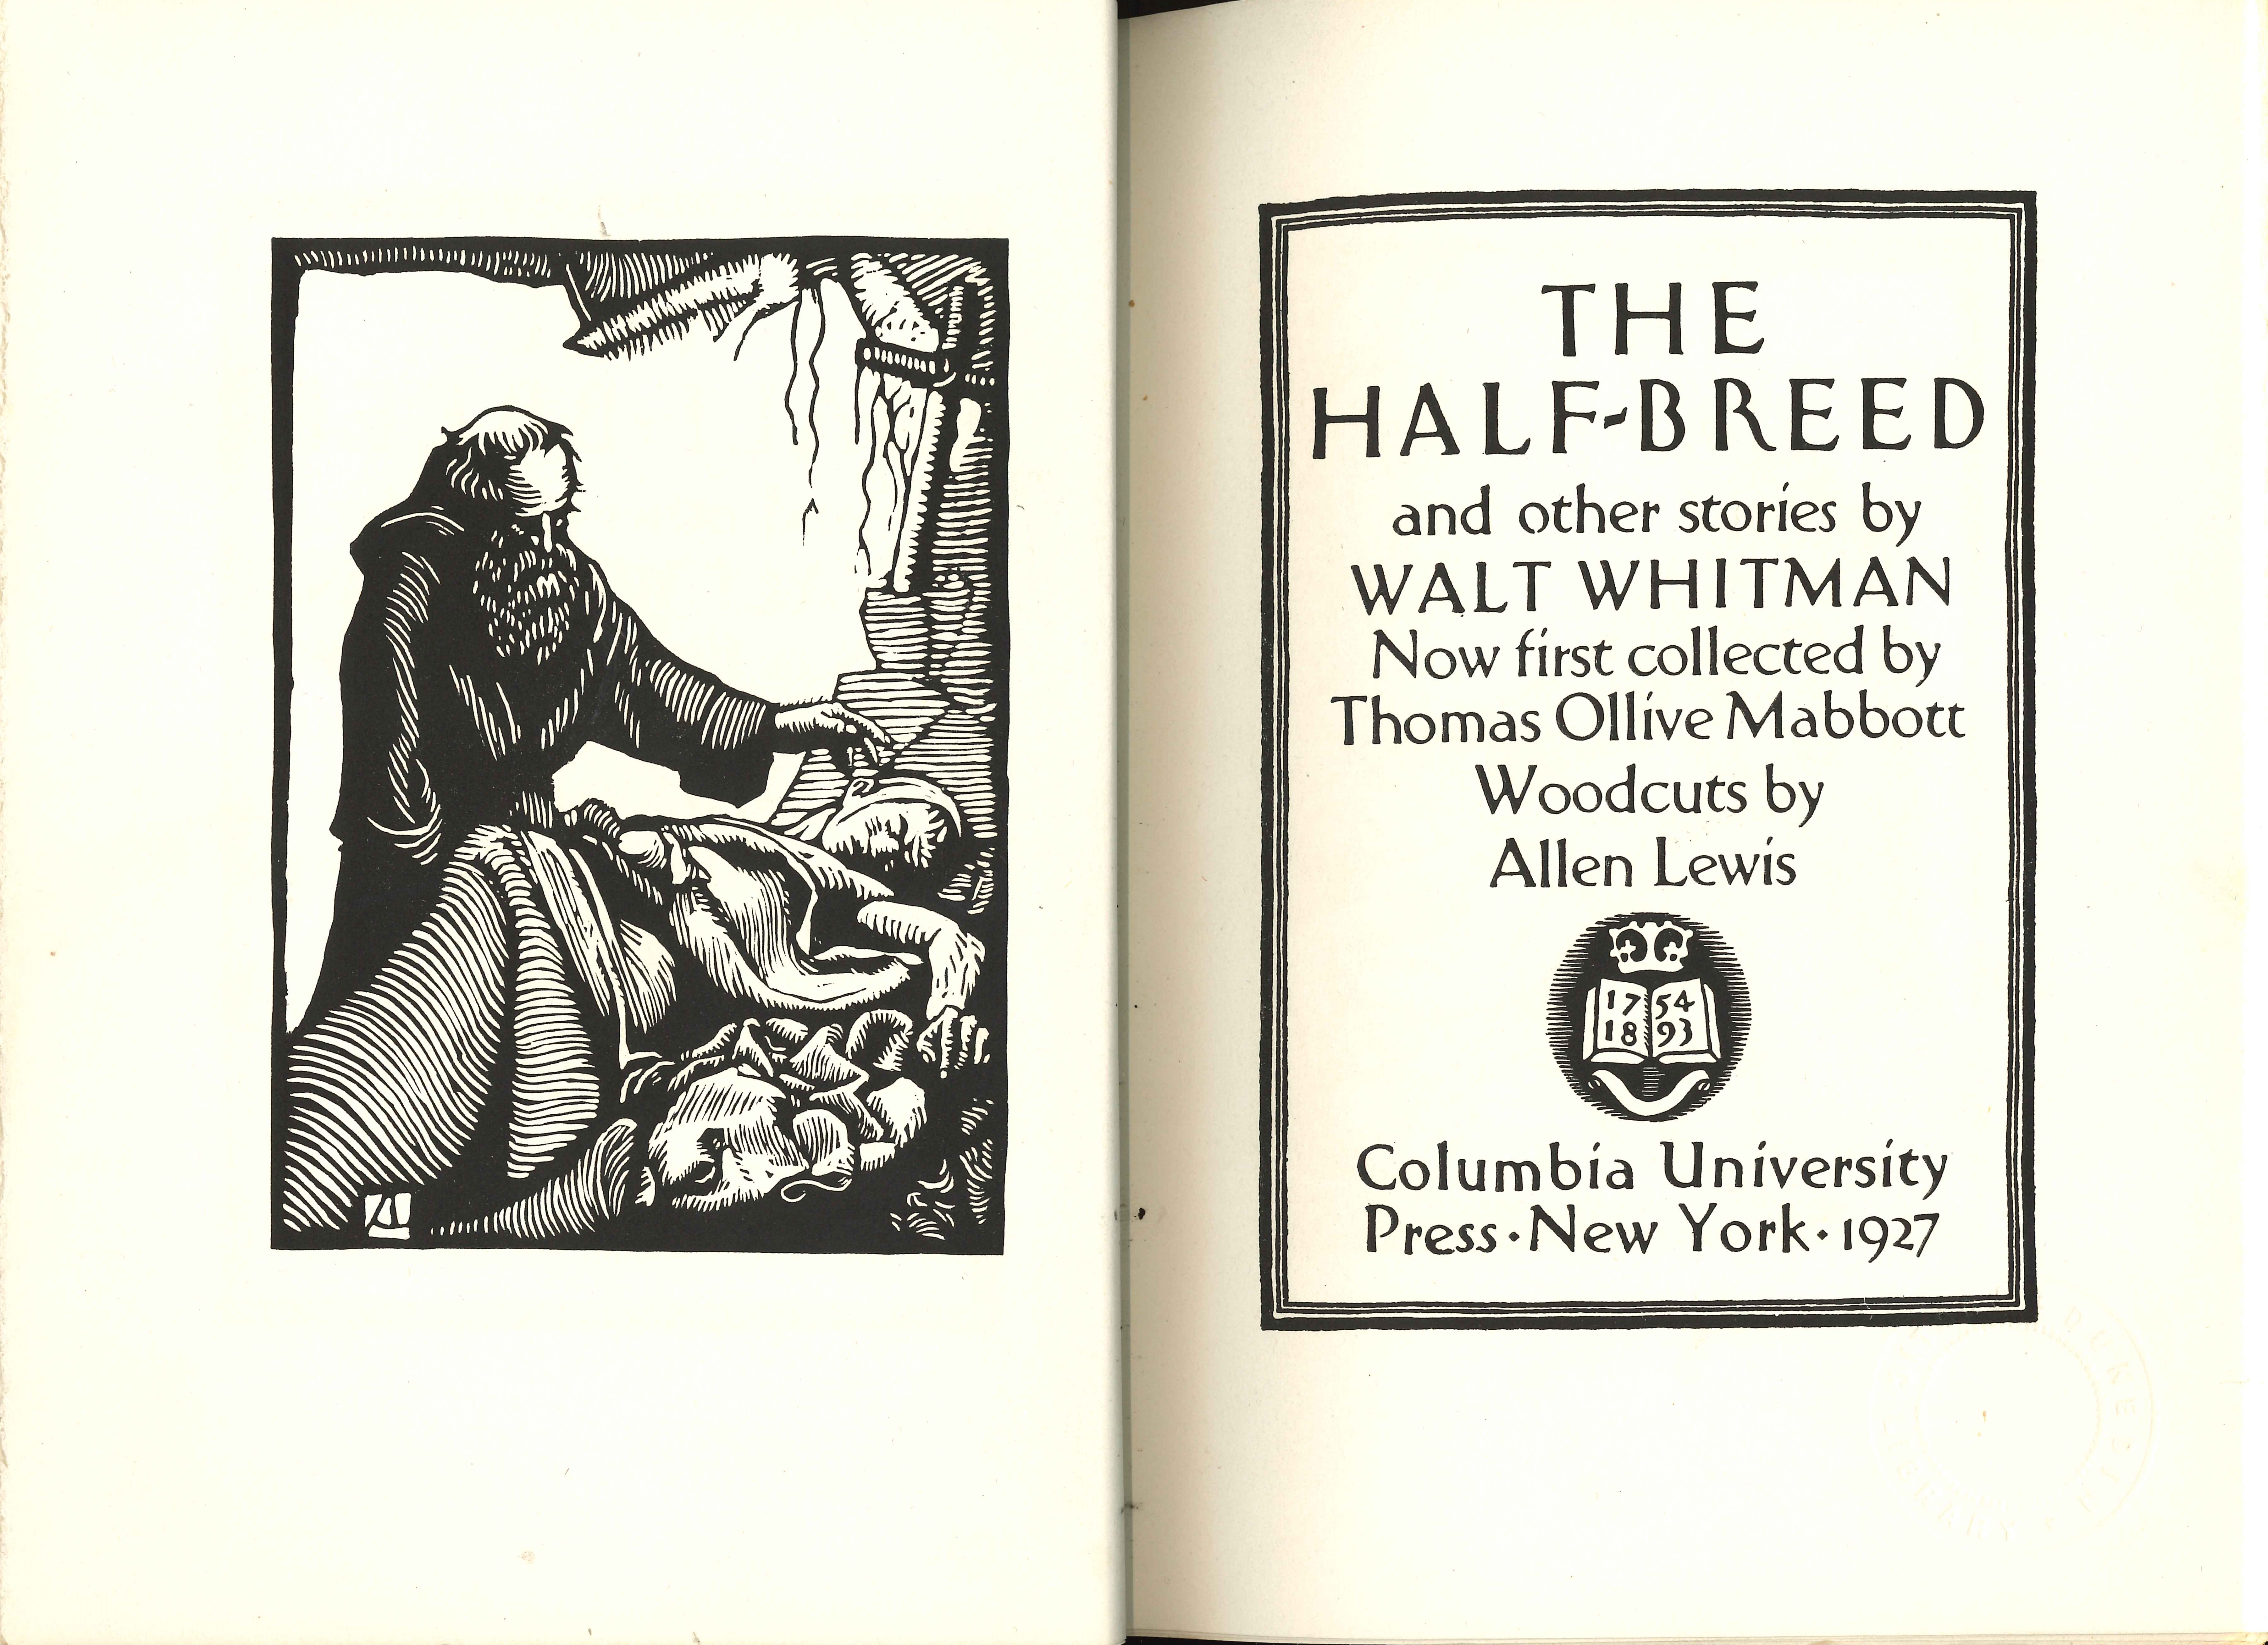 Walt Whitman. 'Richard Parker's Widow' in: The Half-Breed and Other Stories. New York: Columbia University Press, 1927.